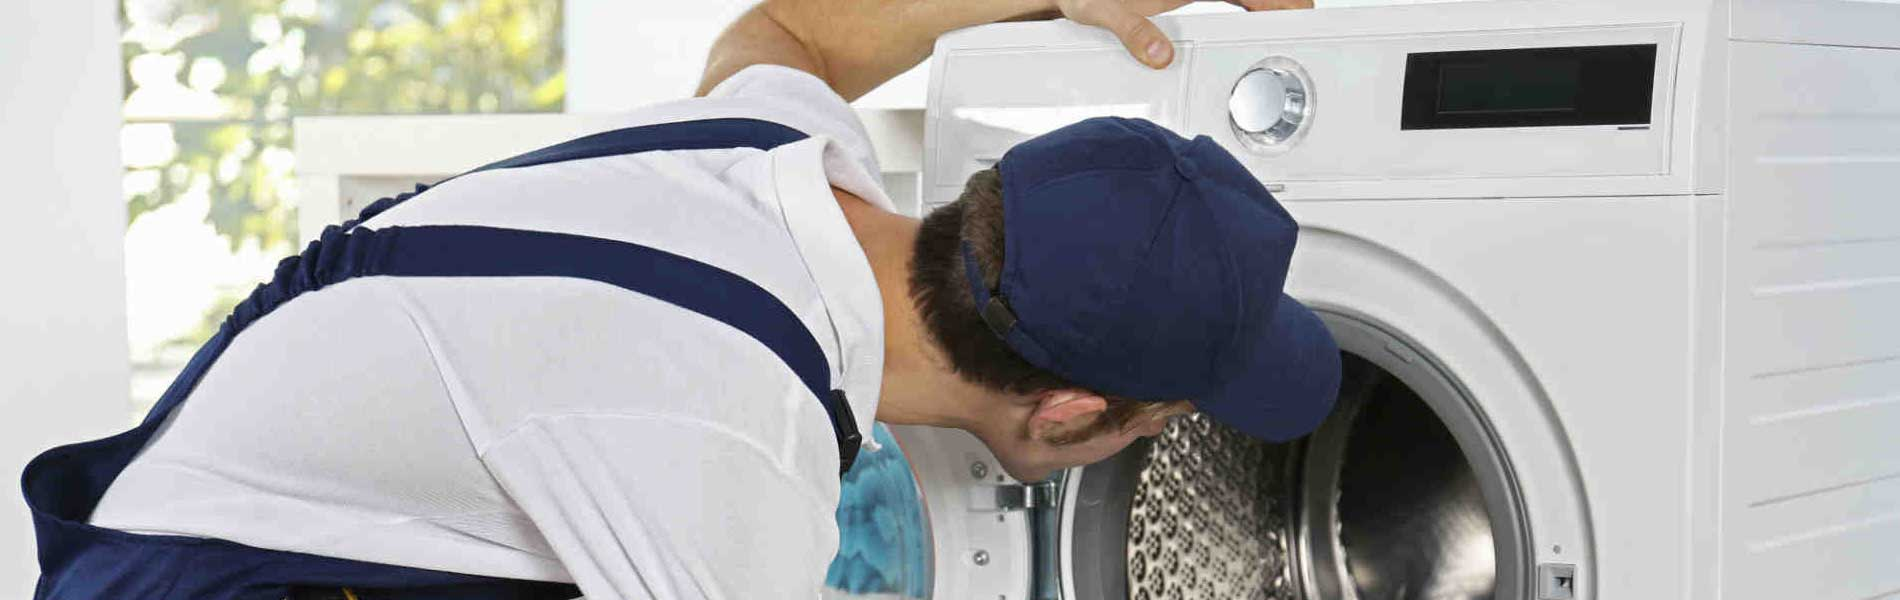 Onida Washing Machine Mechanic in Mettukuppam